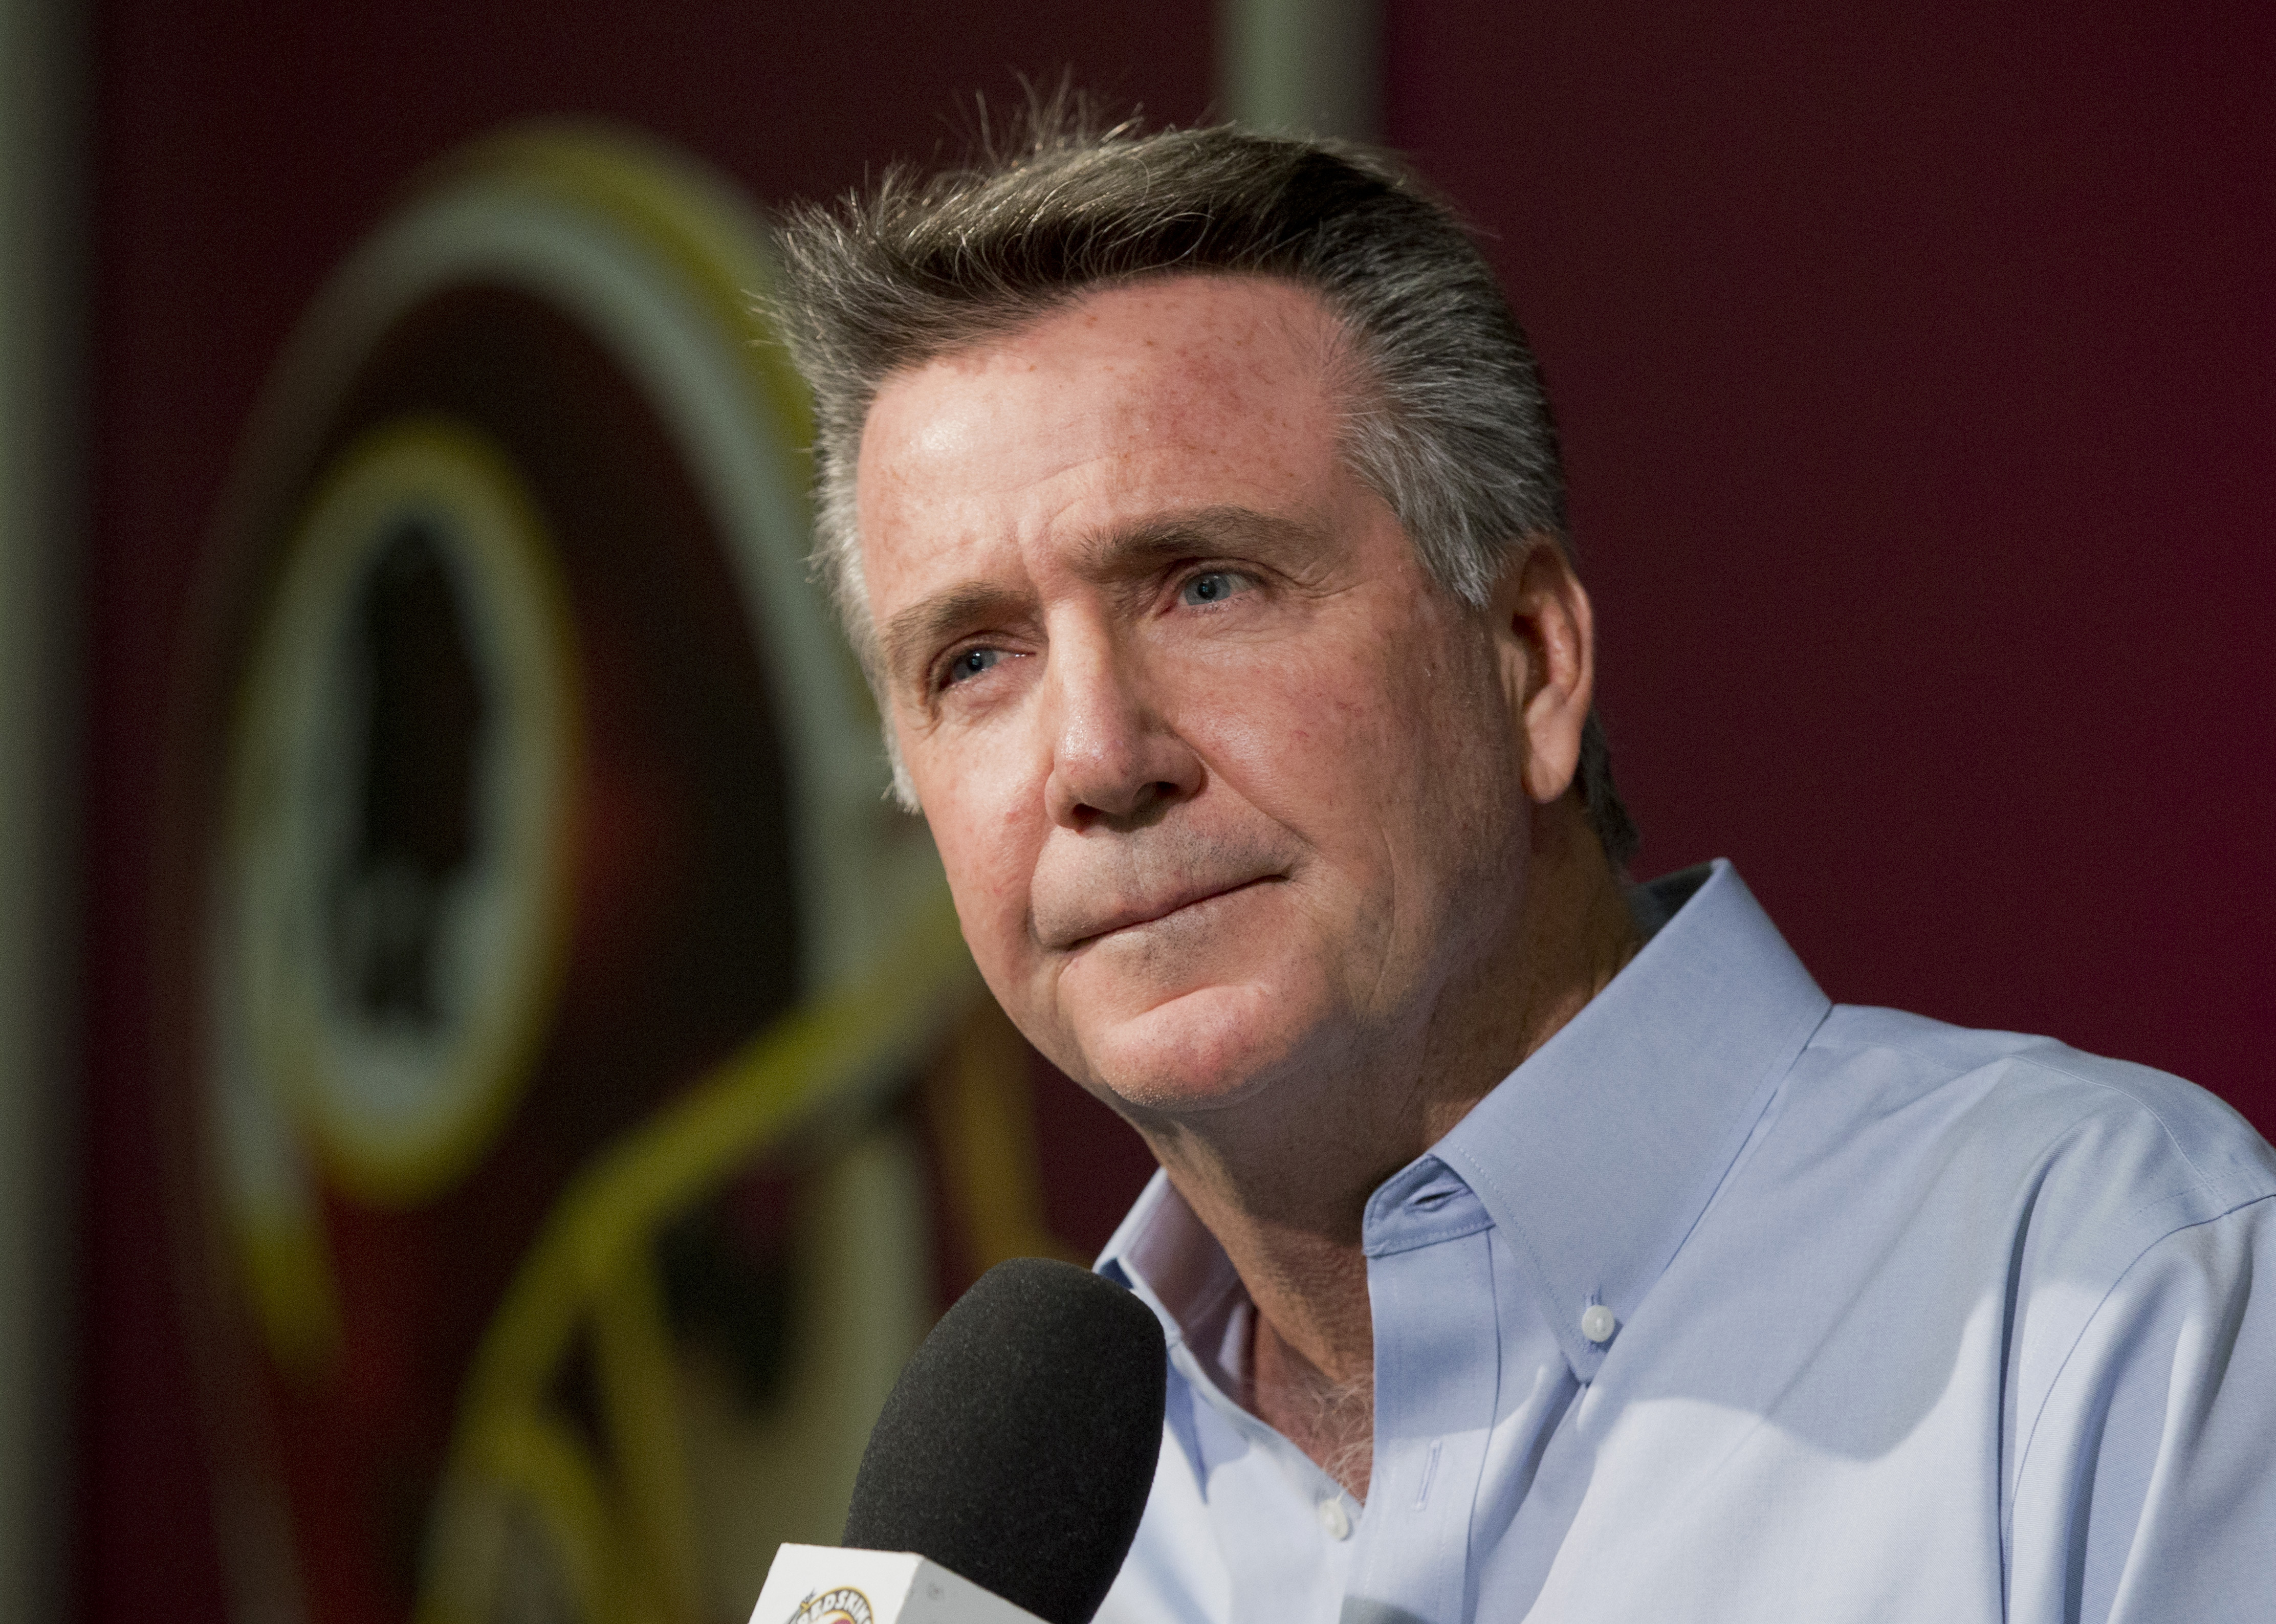 FILE - In this Dec.  31, 2014 file photo, Washington Redskins President and General Manager Bruce Allen speaks to reporters during an NFL football news conference at the Redskins Park in Ashburn, Va. Allen says the Washington Redskins will not reconsider